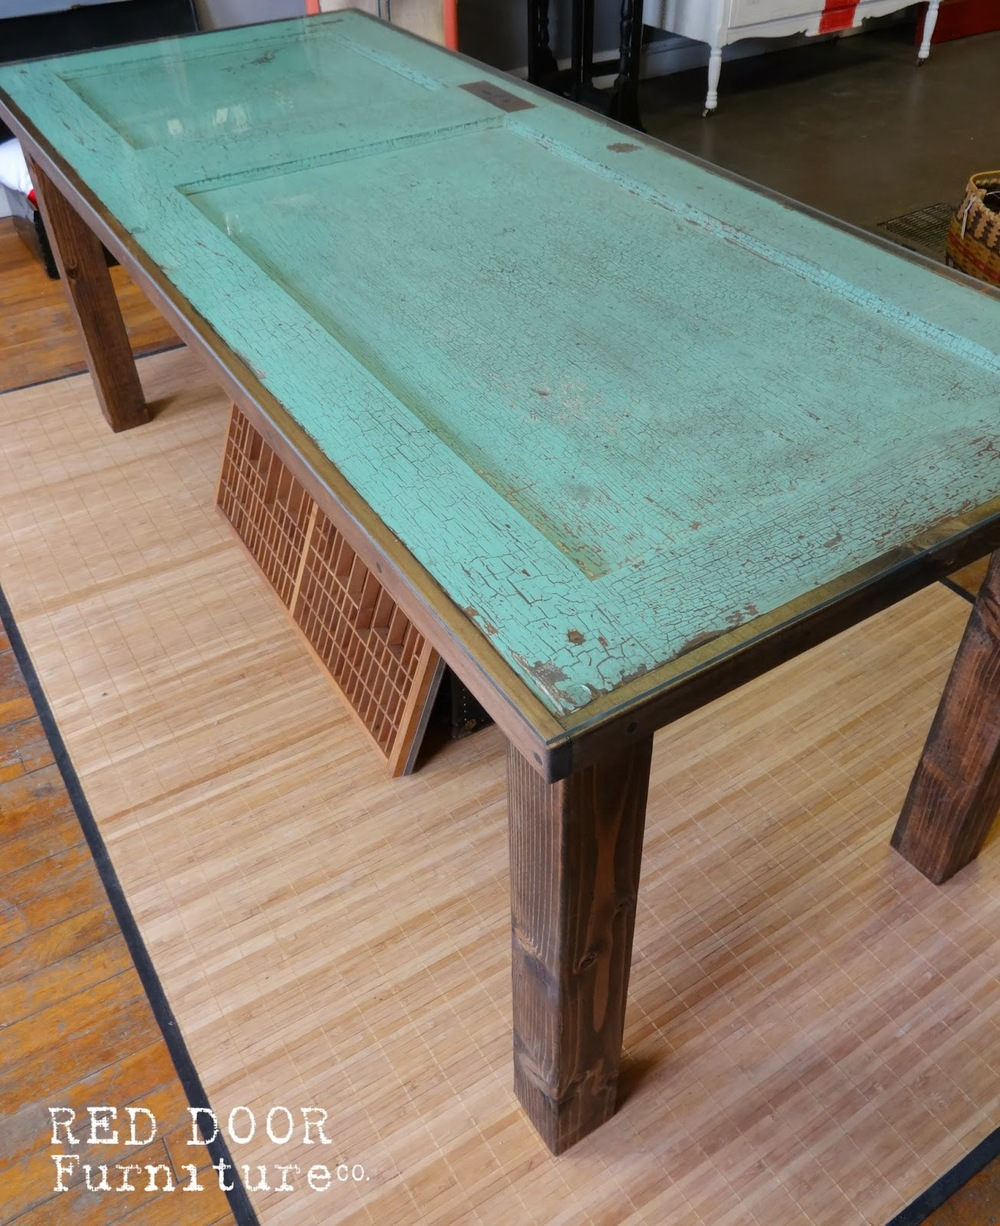 This table has a full sheet of glass to create a level surface. This is also the original paint, so the glass also keeps any potential flakes or chips from coming off.